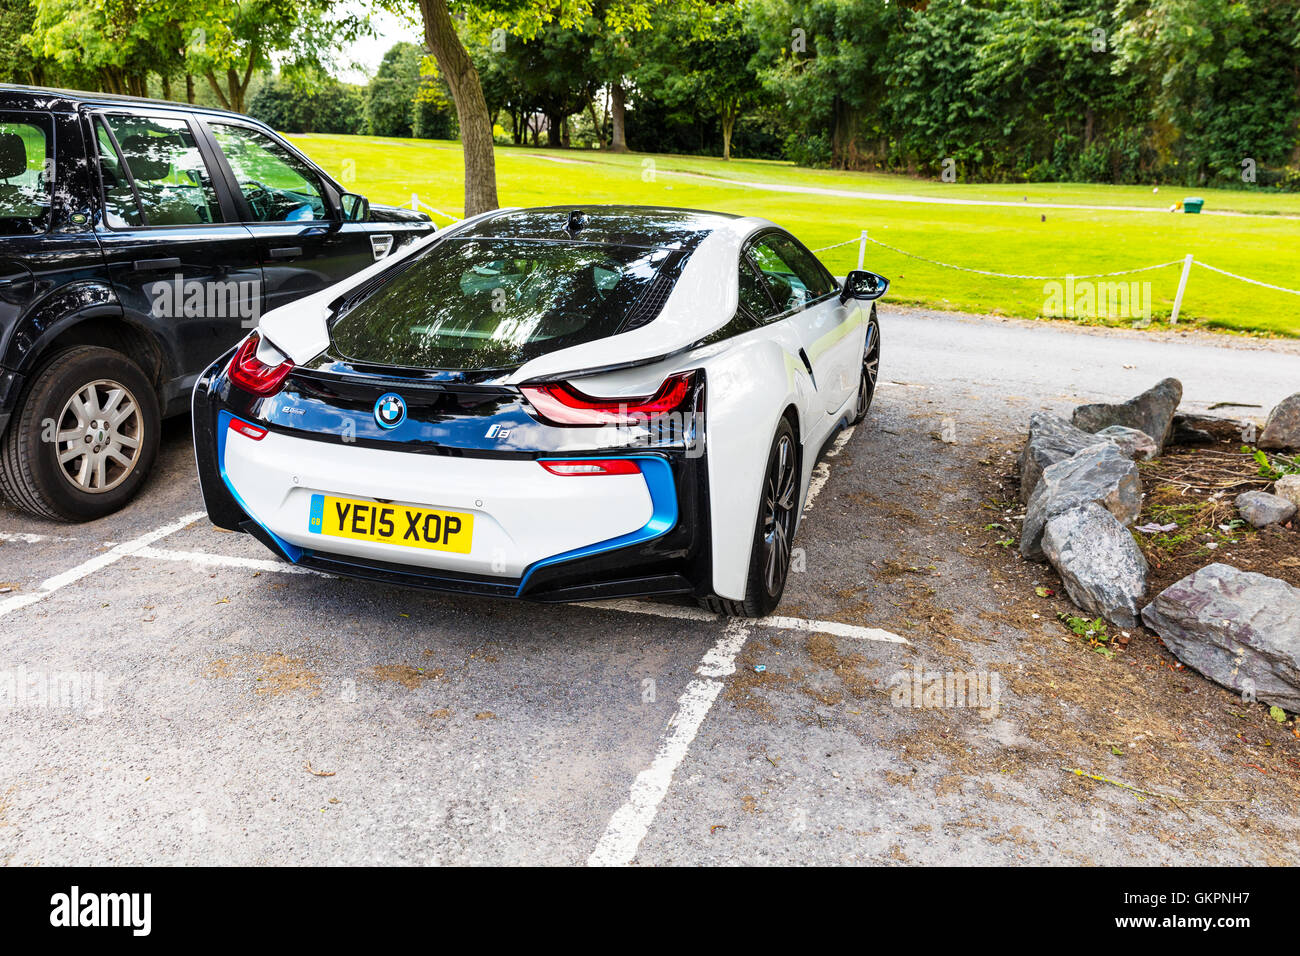 bmw i8 sports car plug in hybrid sports cars developed by. Black Bedroom Furniture Sets. Home Design Ideas